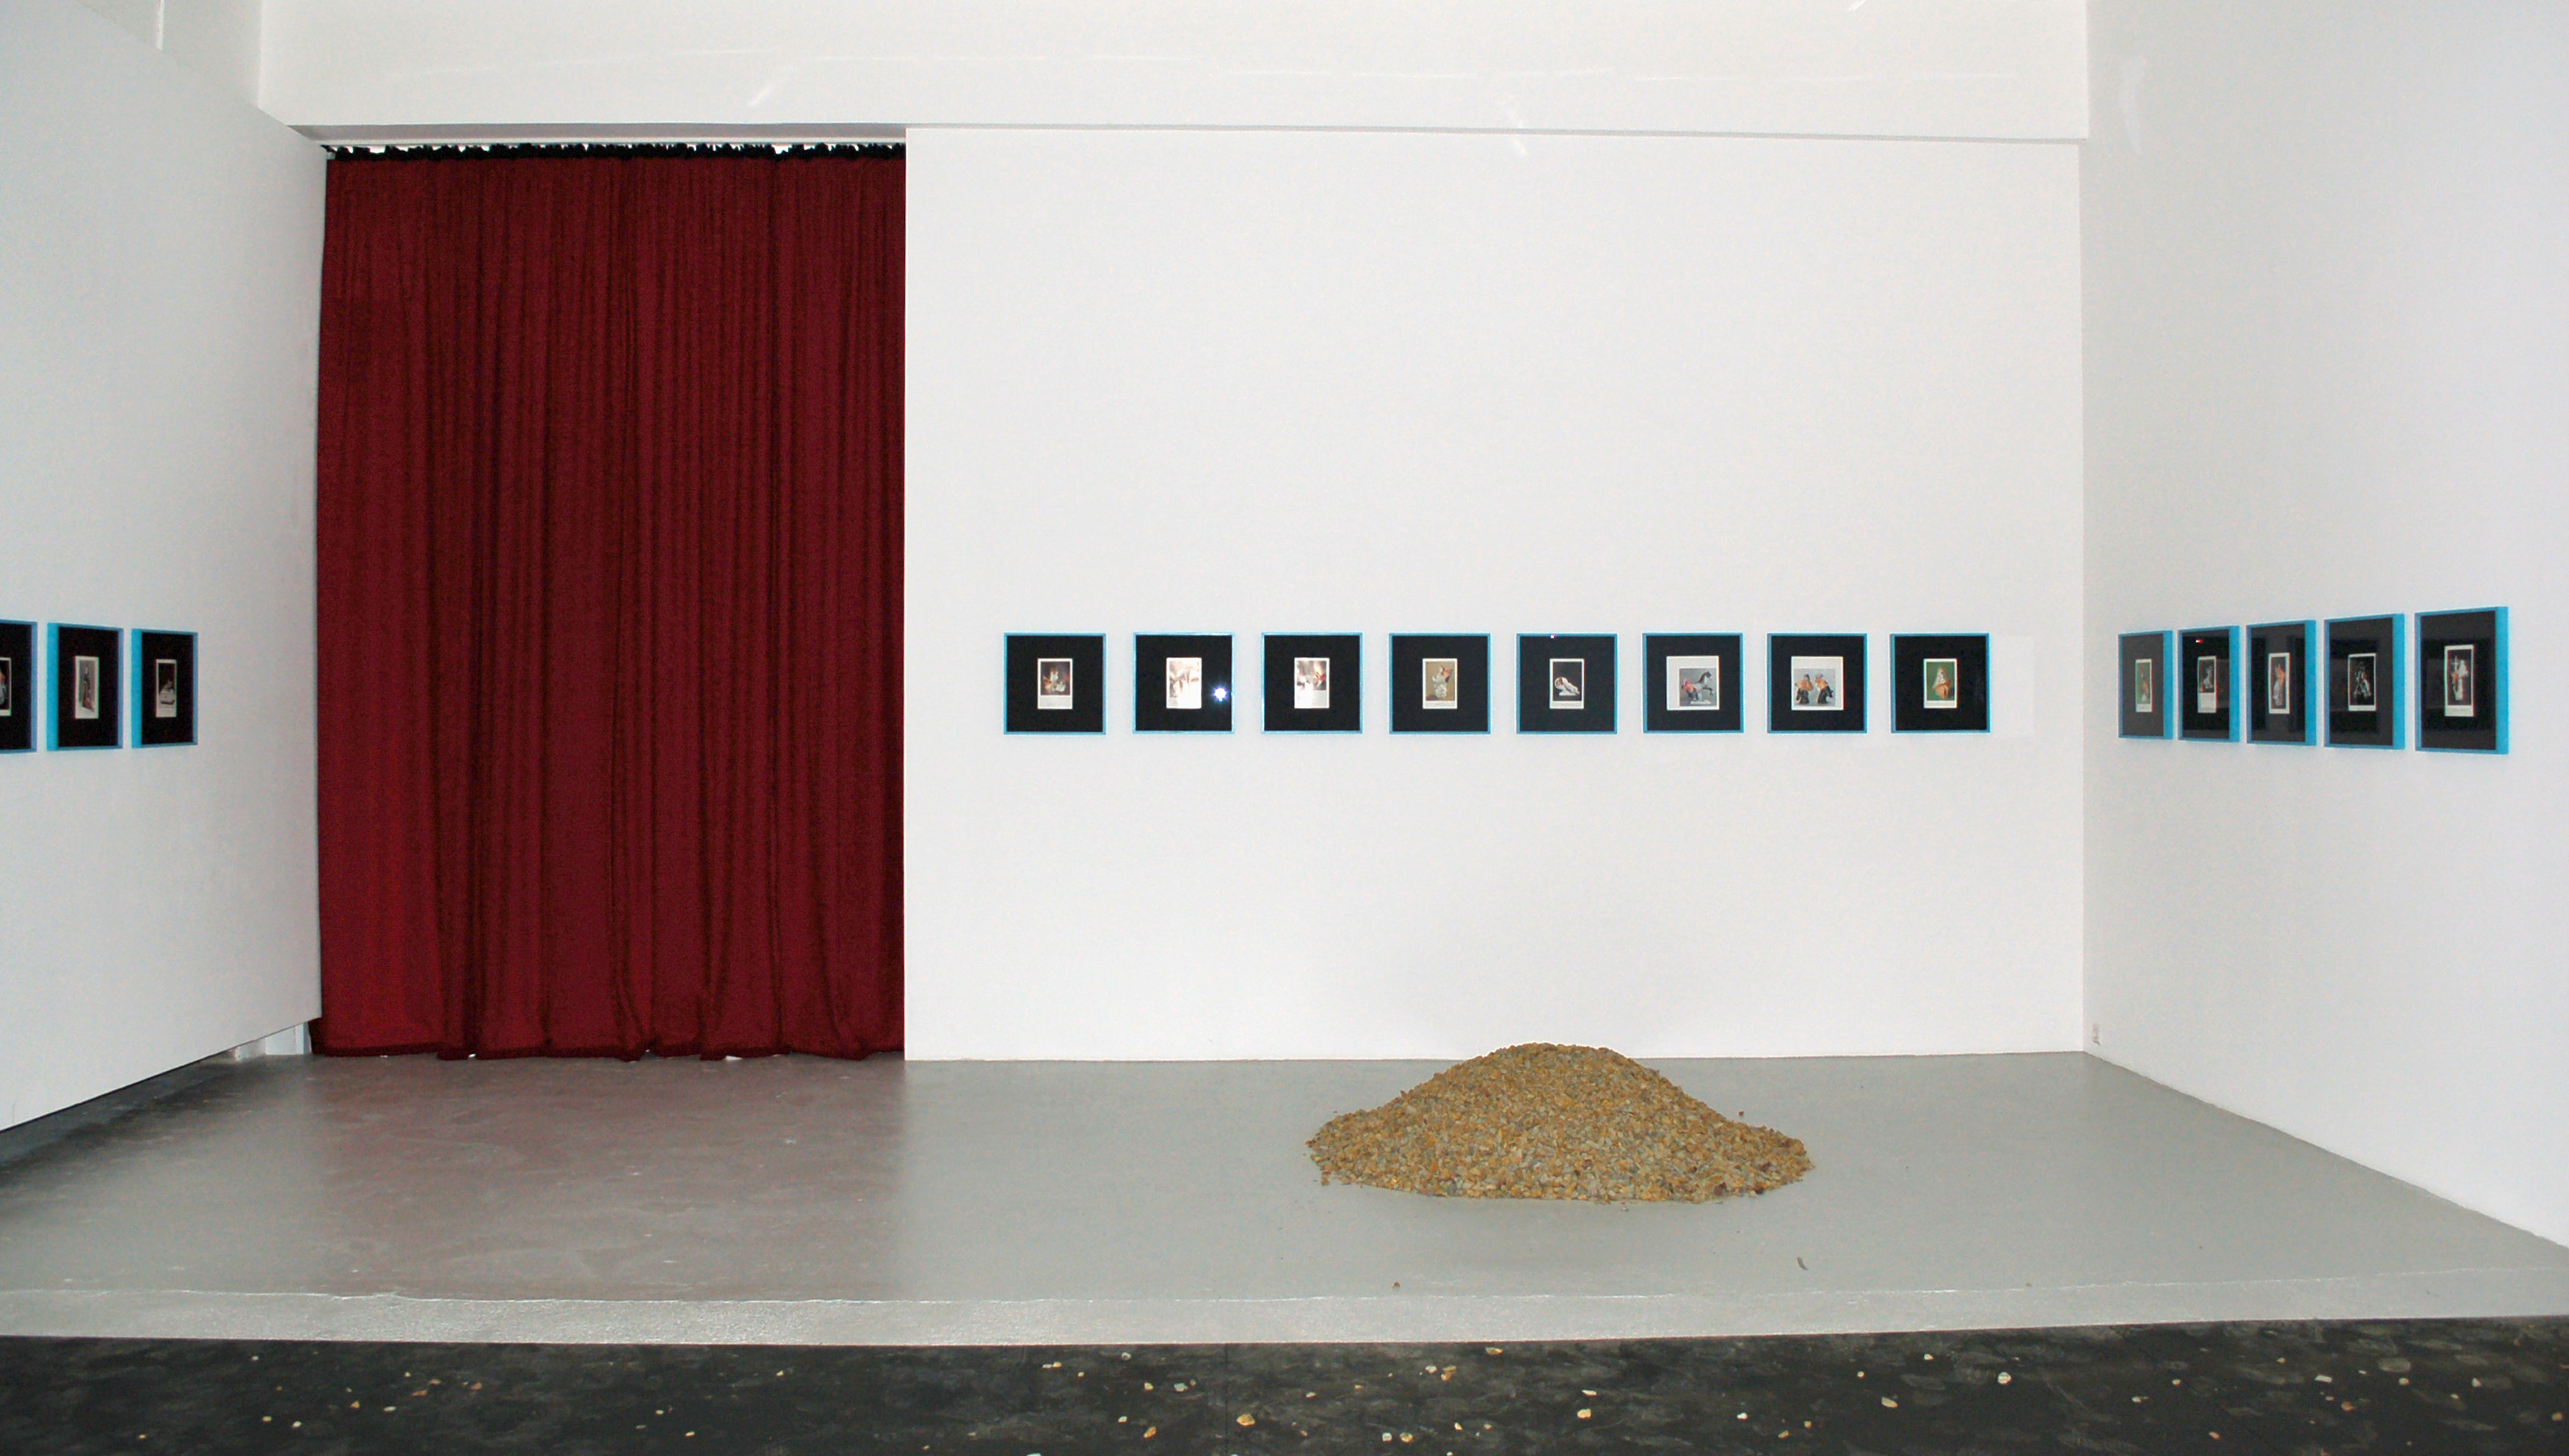 Galerie Barbara Thumm \ Diango Hernández – out-of-place artifacts (OOPArt) – Galerie Barbara Thumm, 2008